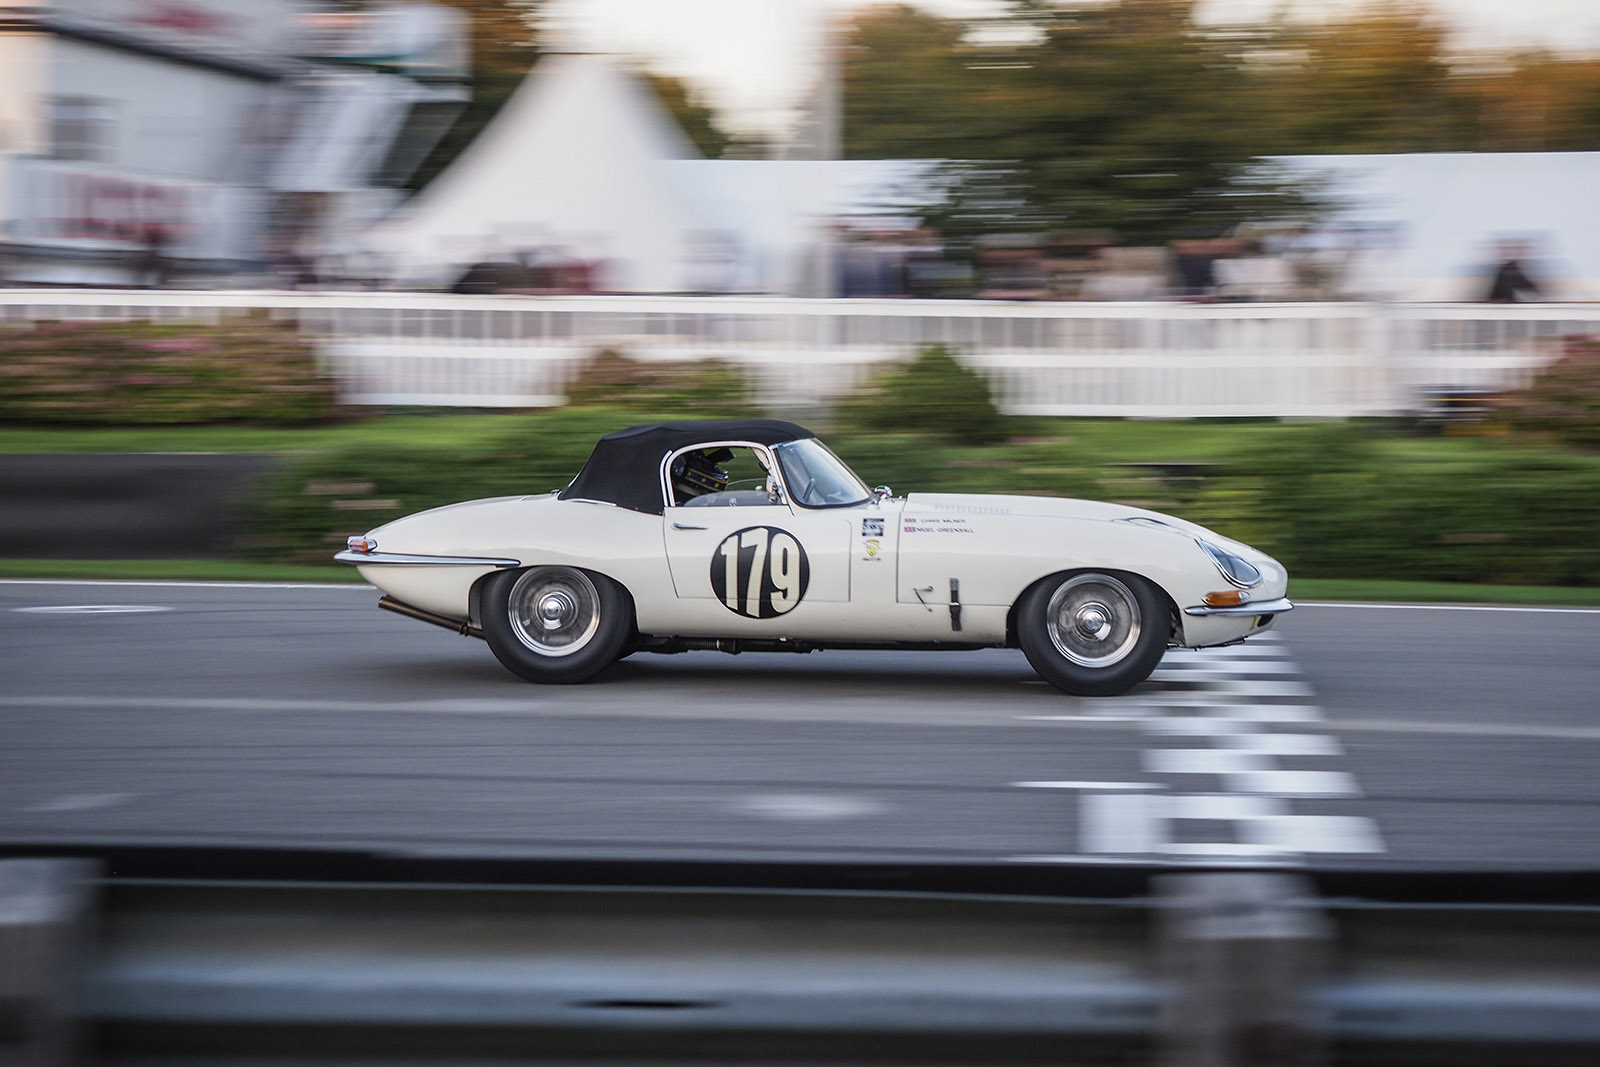 1961-Jaguar-E-Type-179WK-Goodwood-Kinrara-Trophy-2018.jpg